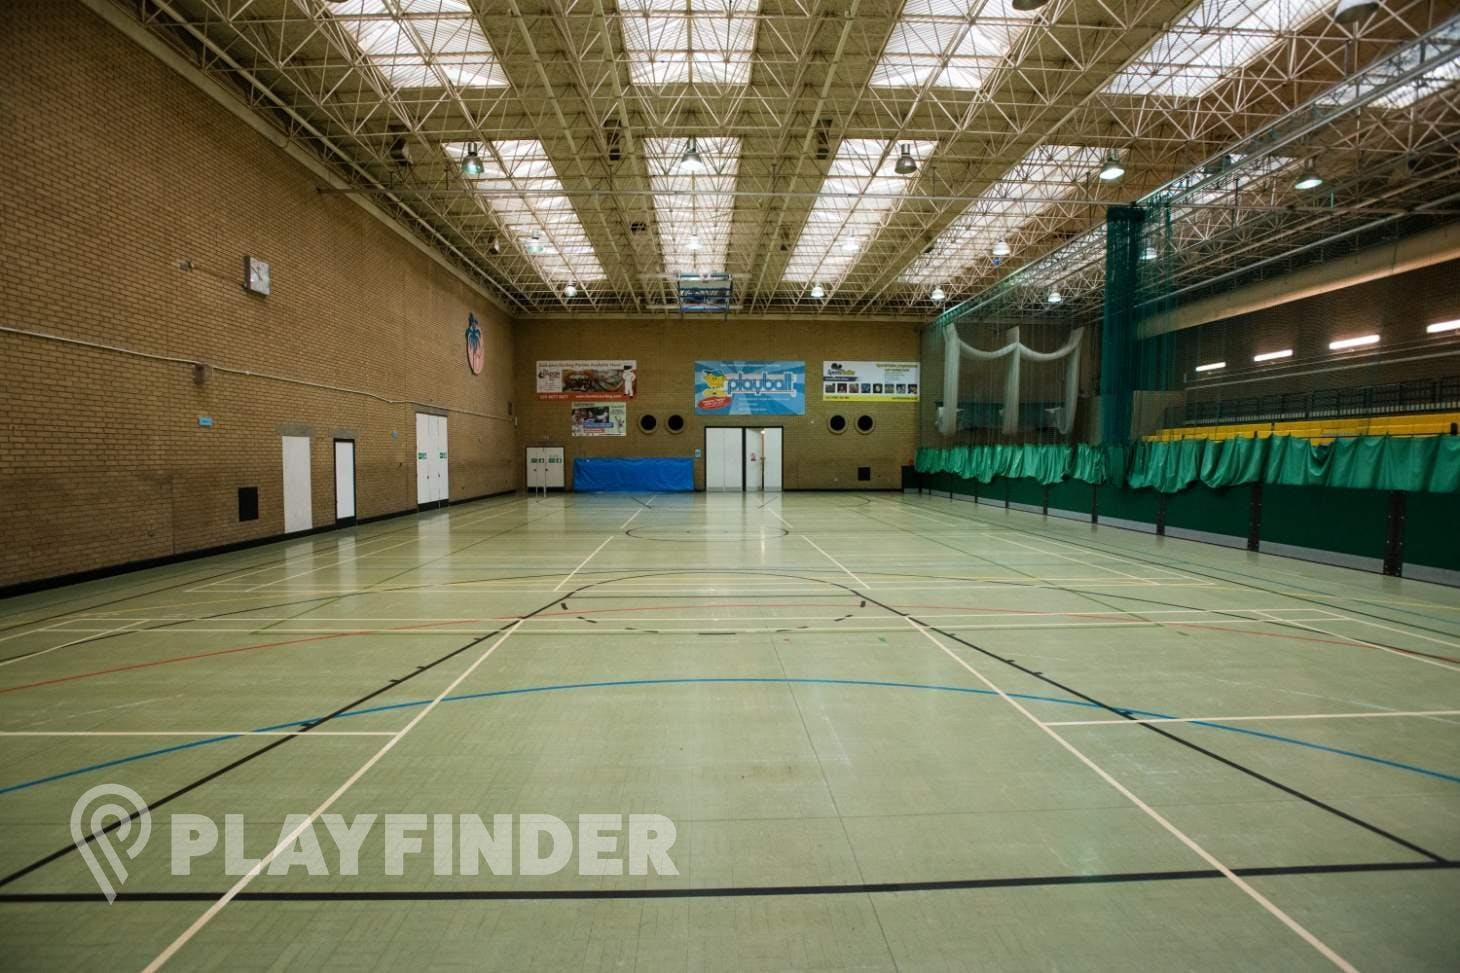 Latchmere Leisure Centre Nets | Sports hall cricket facilities